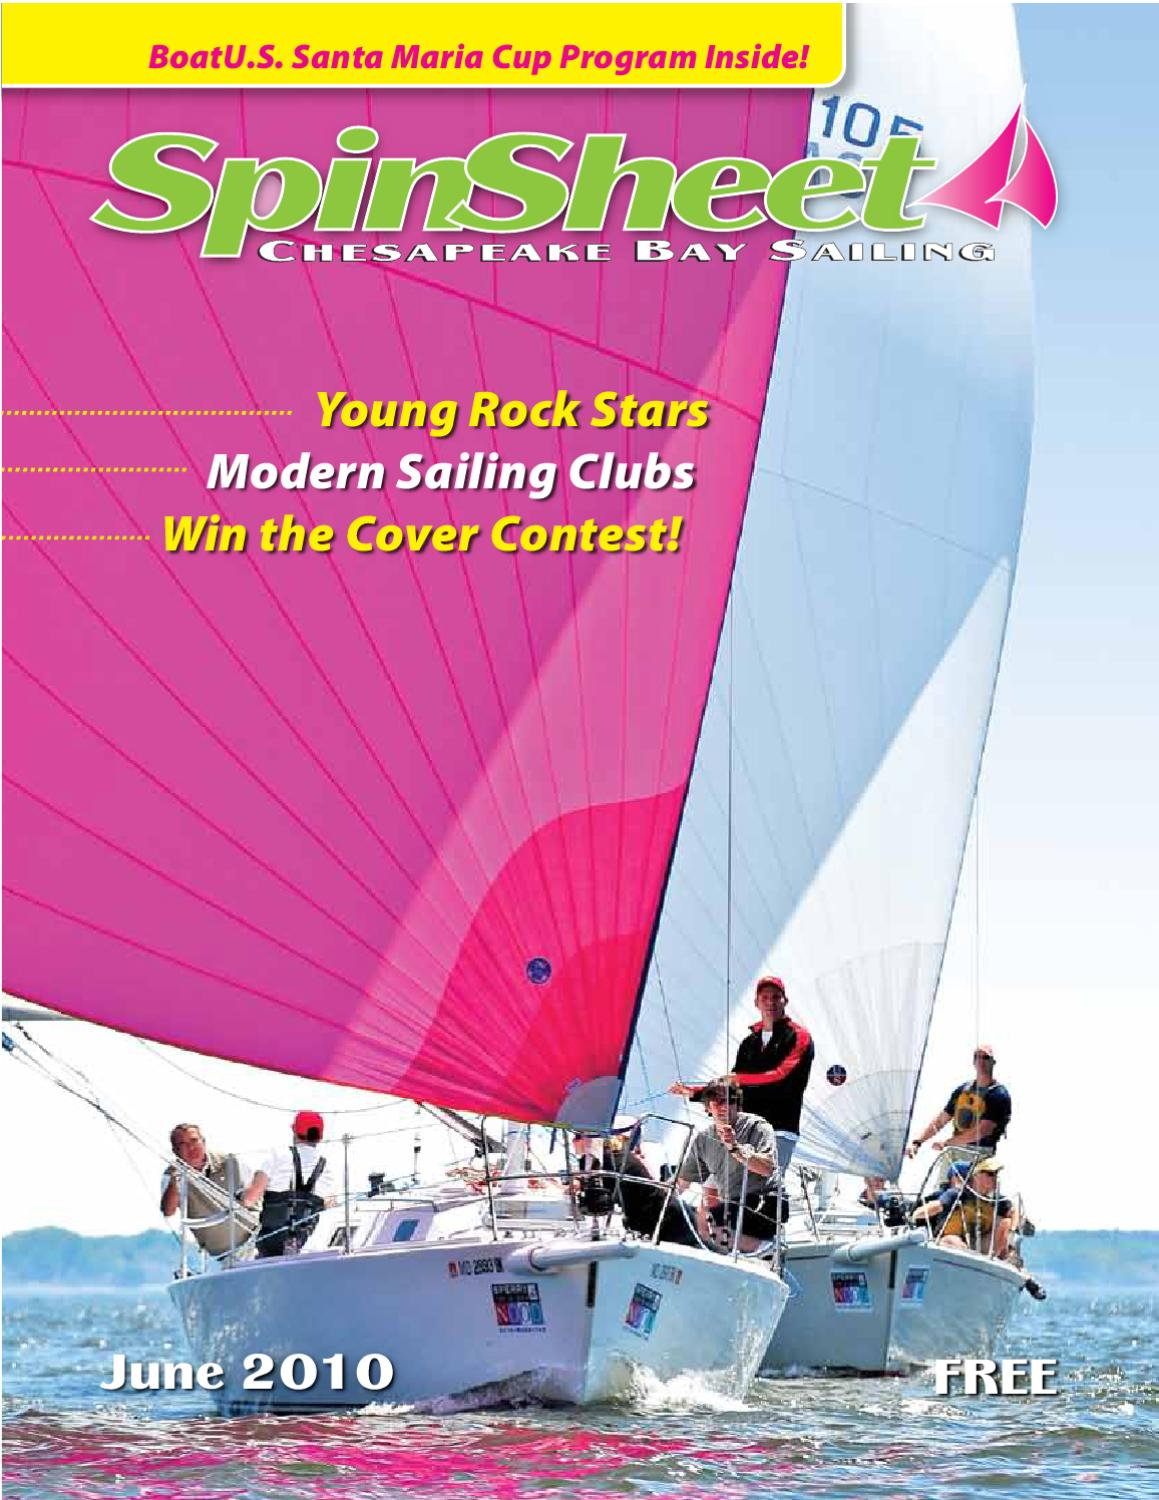 Spinsheet June 2010 By Publishing Company Issuu Wiring Diagram Advice For Small Boat Page 1 Iboats Boating